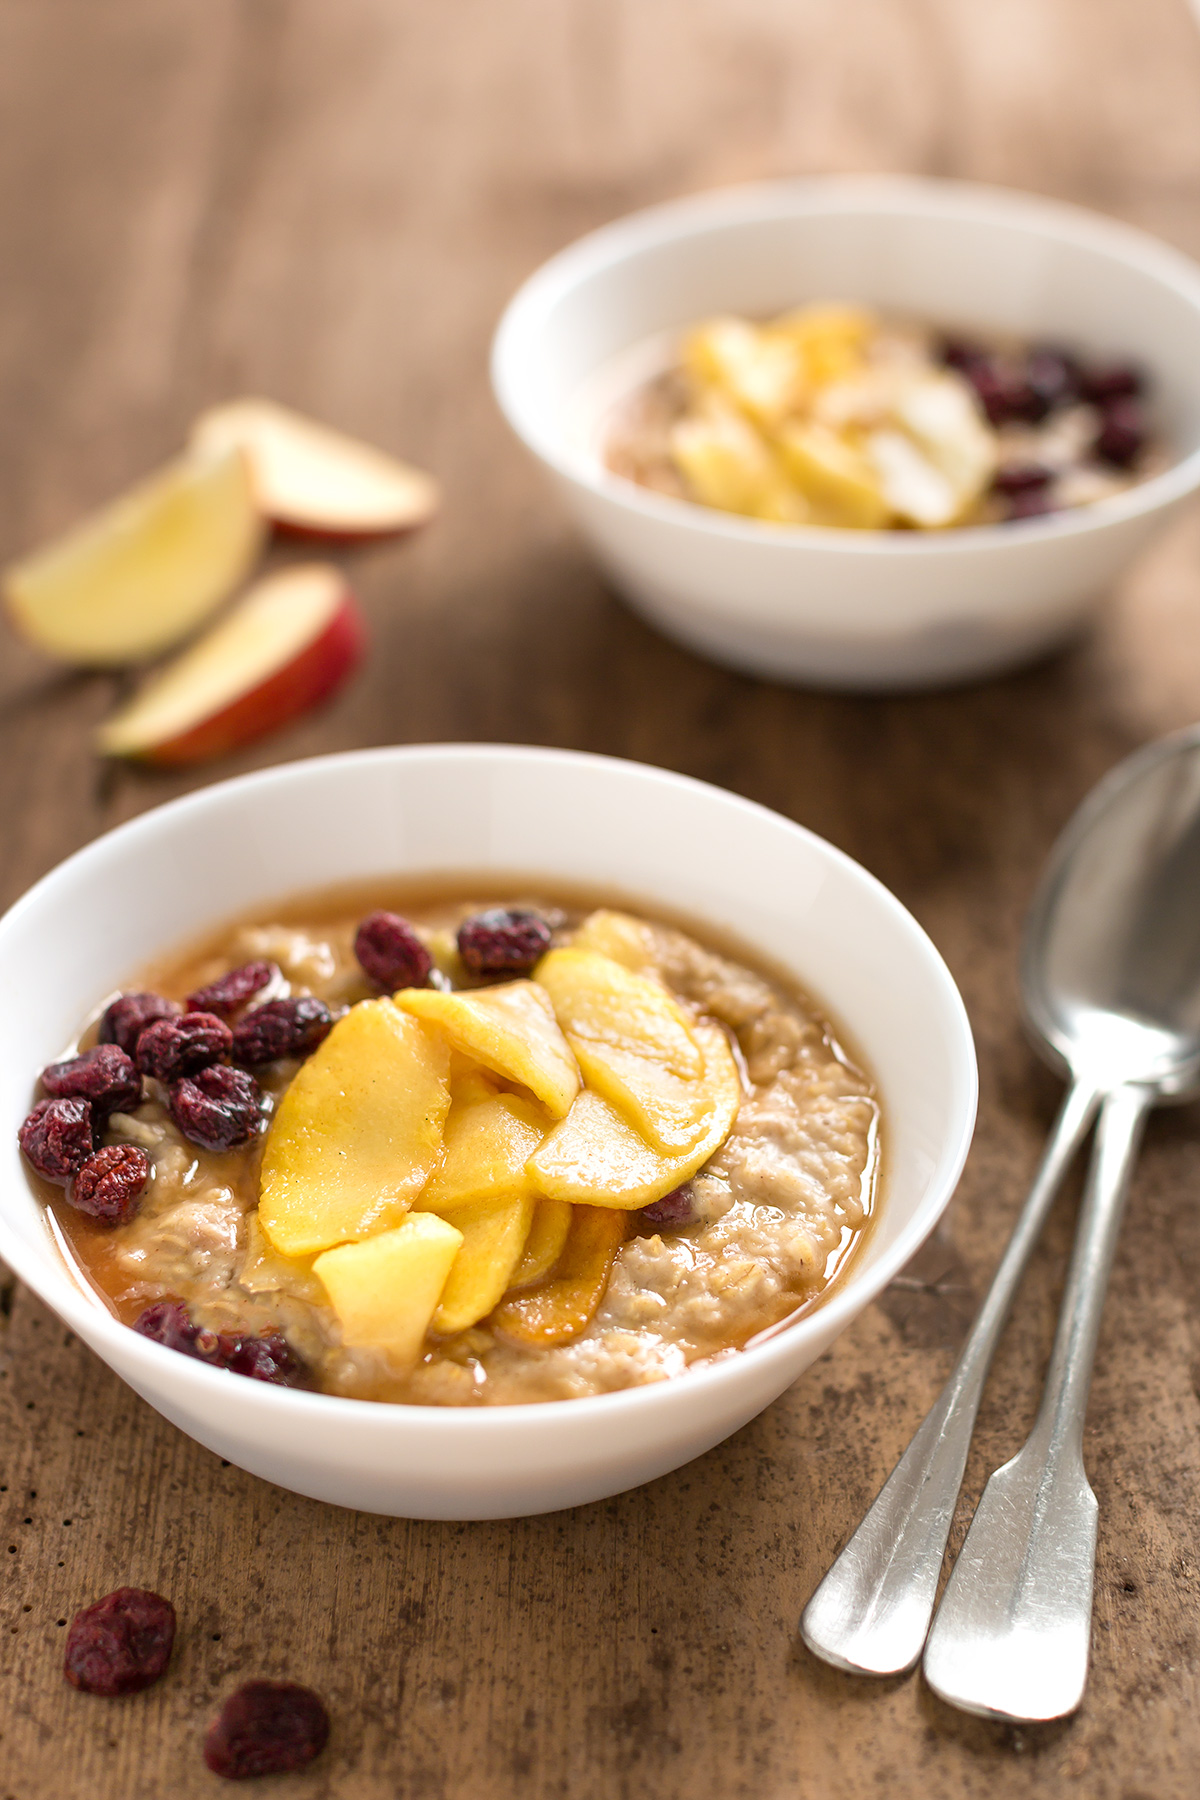 porridge di avena alle mele caramellate e cannella - caramelized apple oatmeal